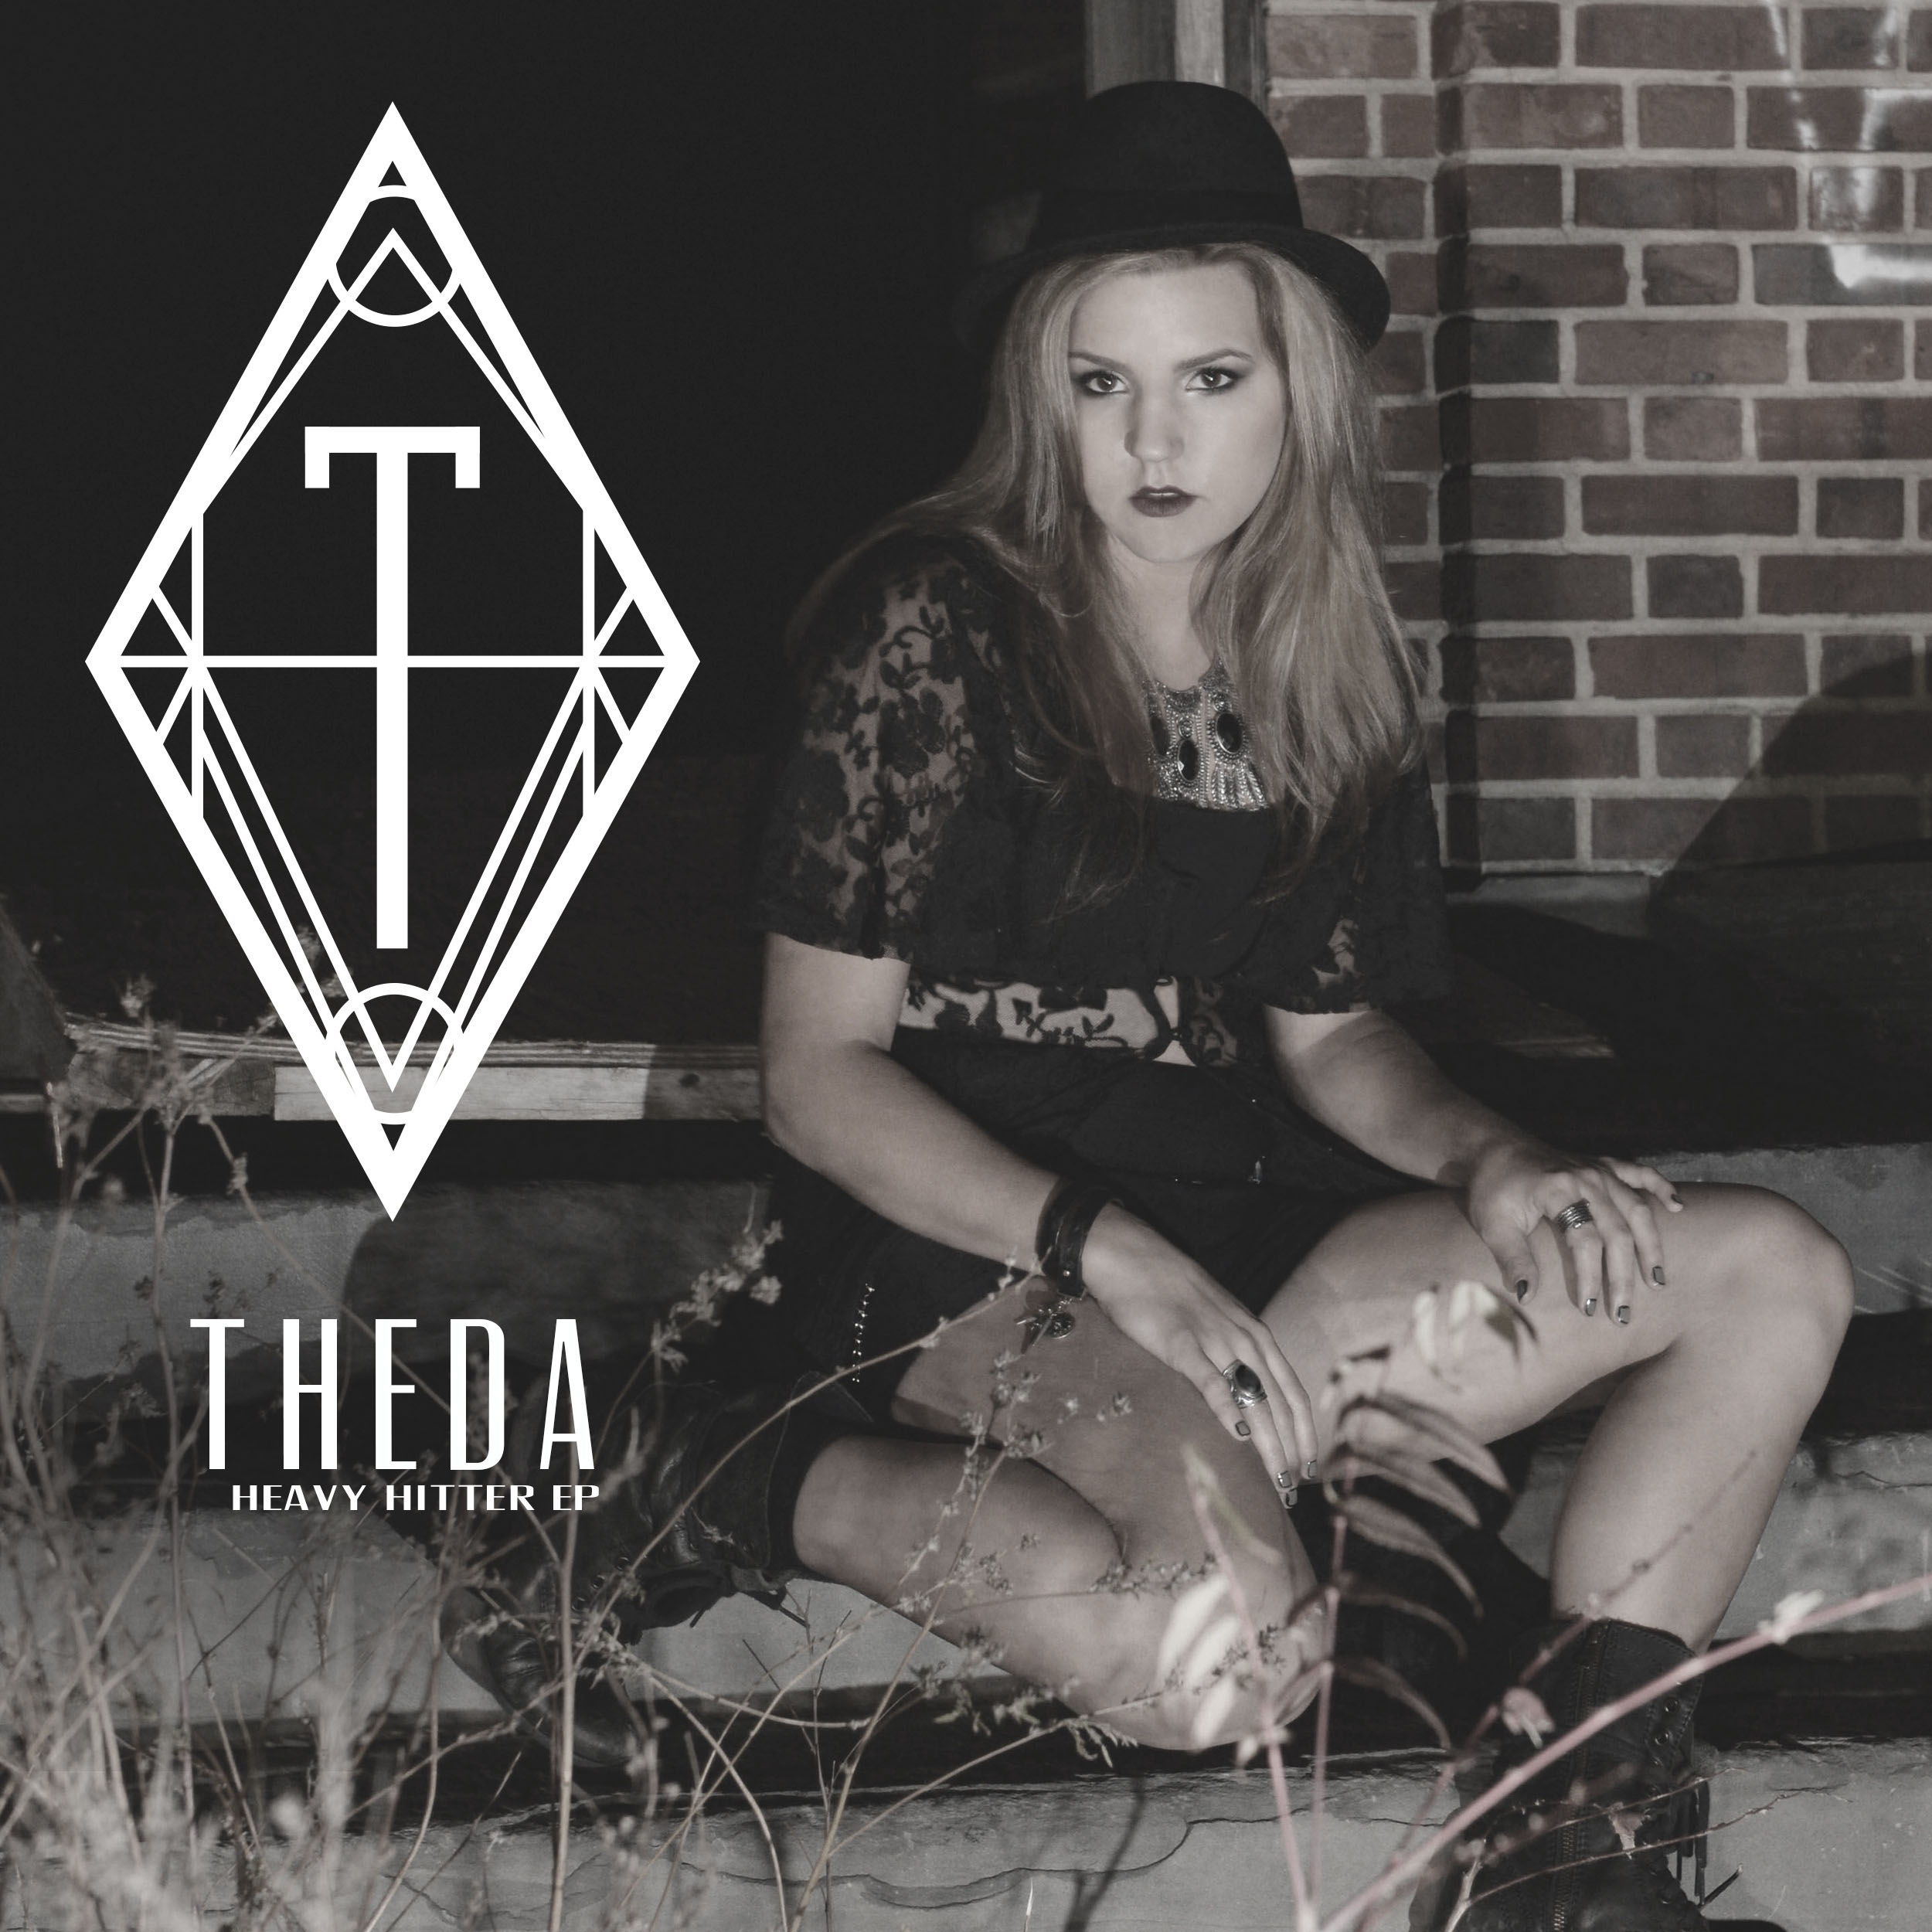 theda